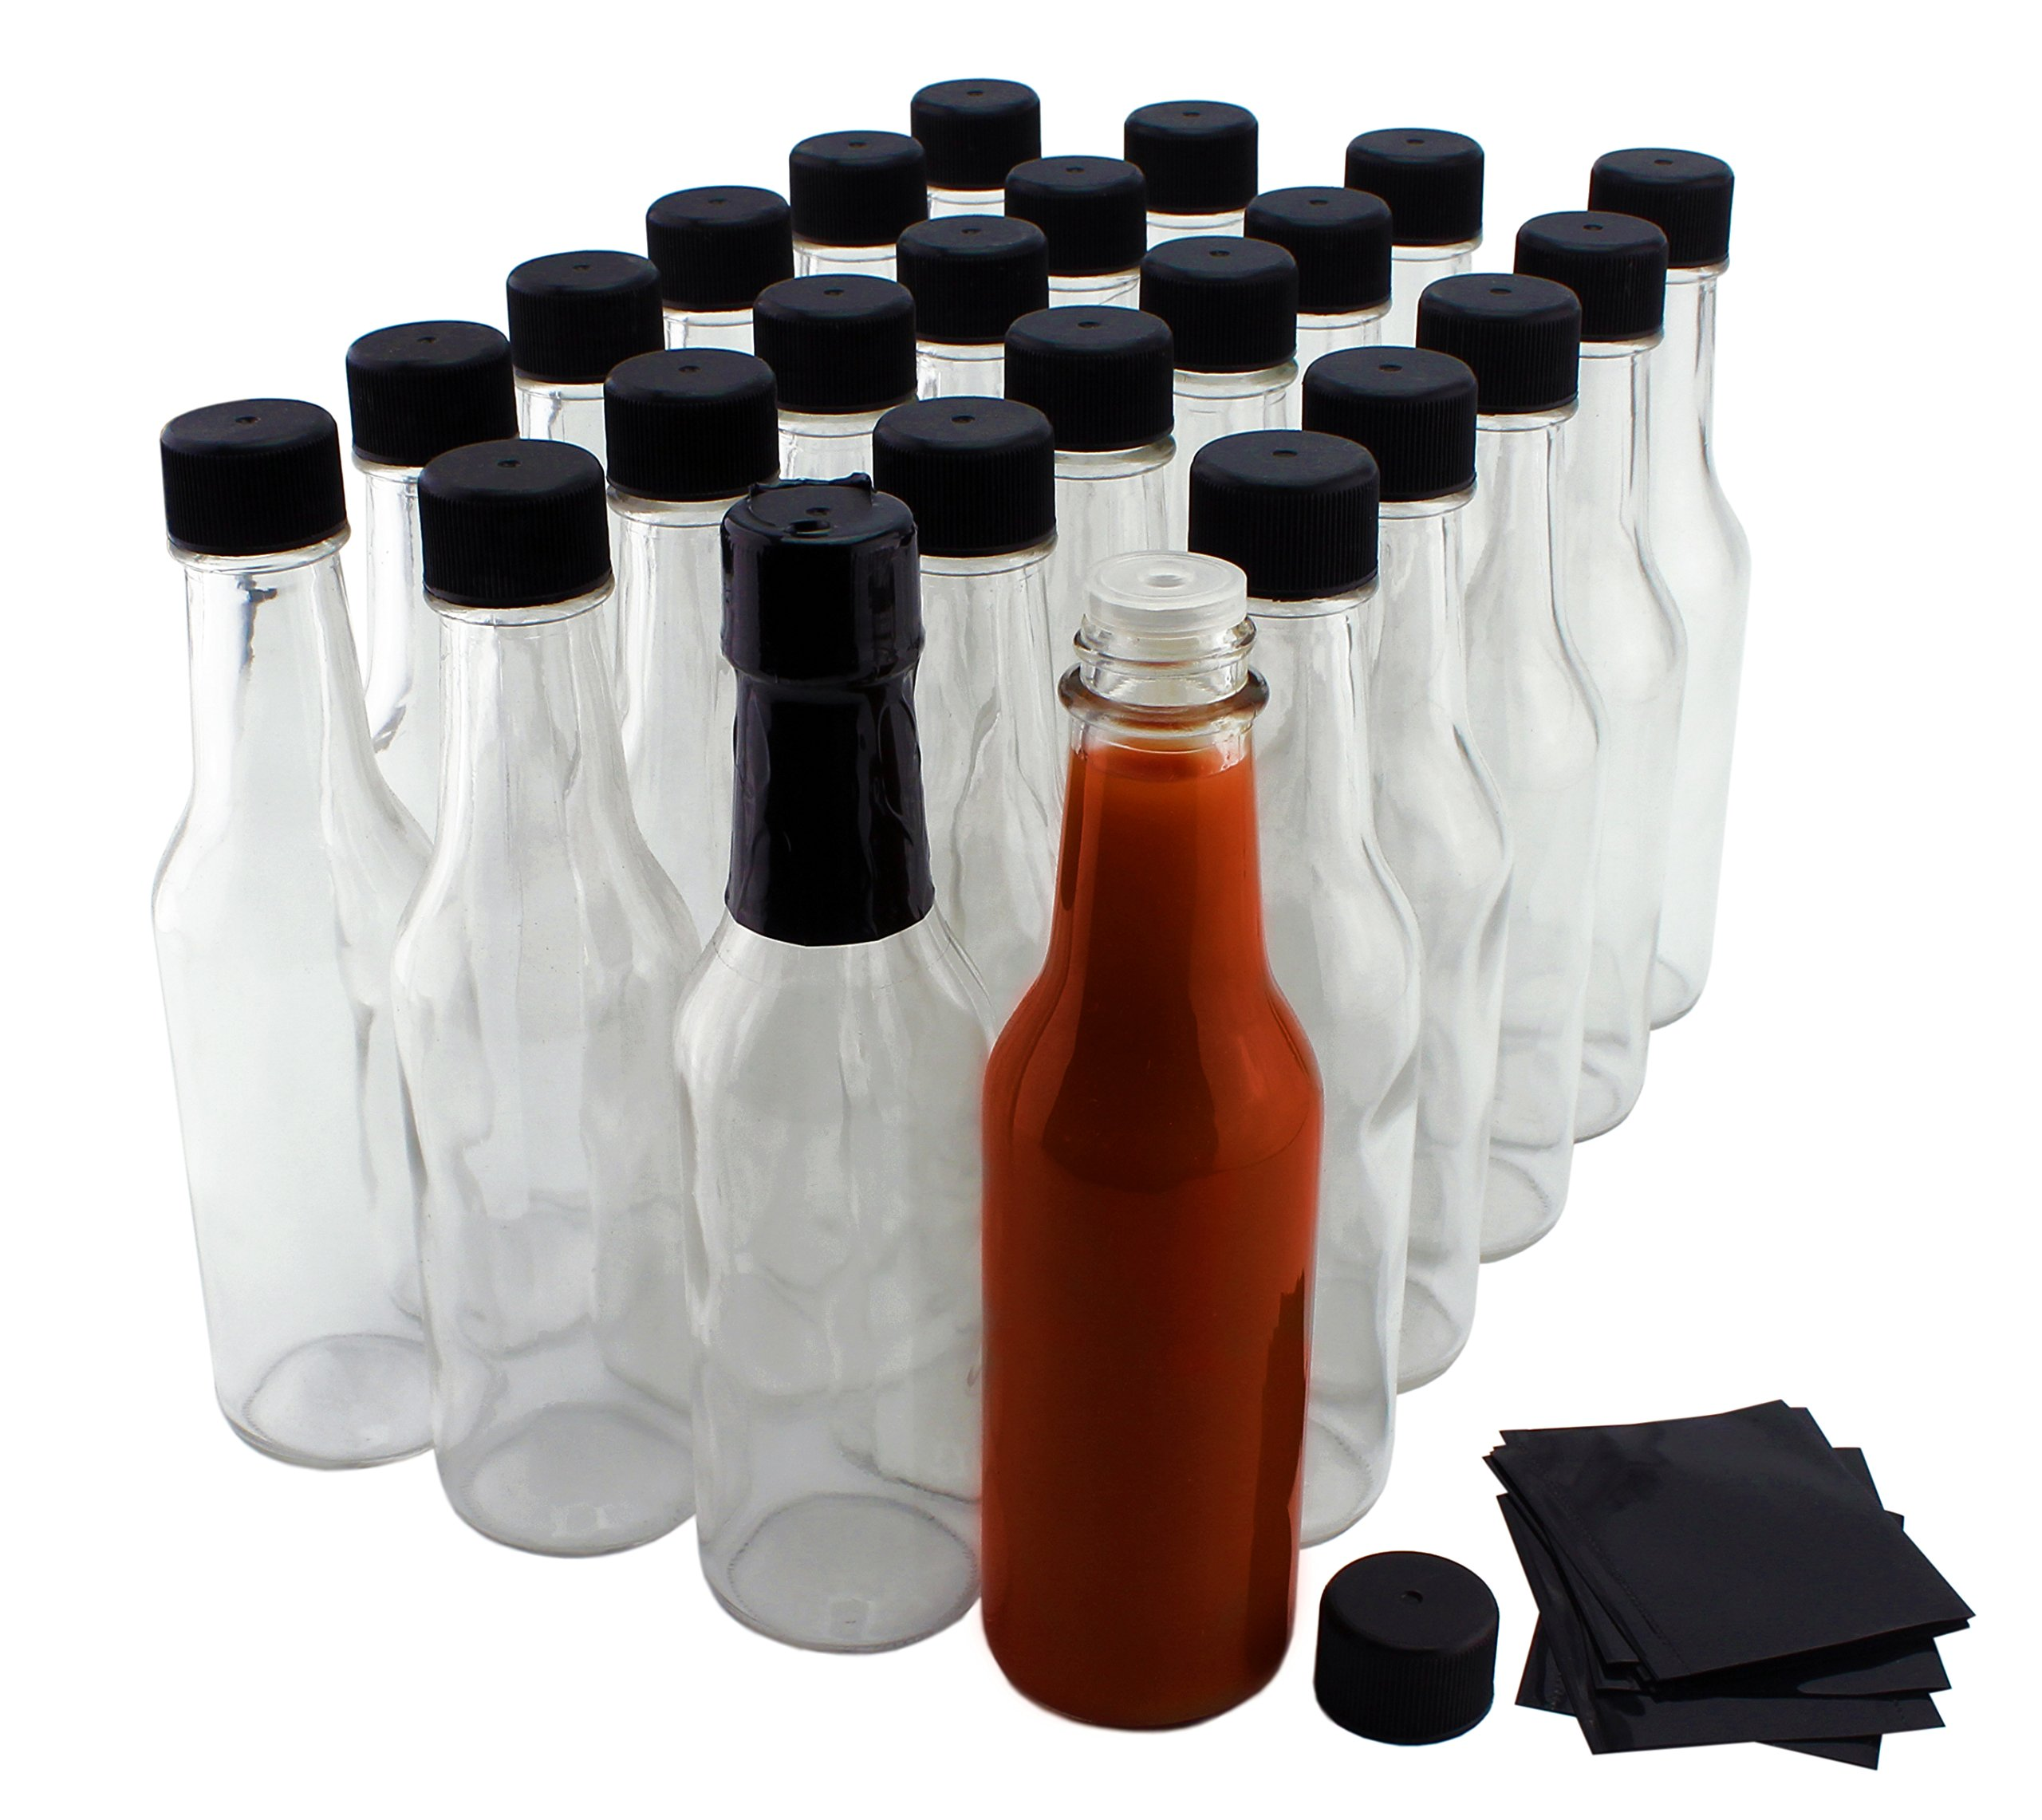 5-Ounce Hot Sauce Bottles (24-Pack), Clear Glass Woozy Bottles Set w/Black Caps, Dripper Inserts & Shrink Bands